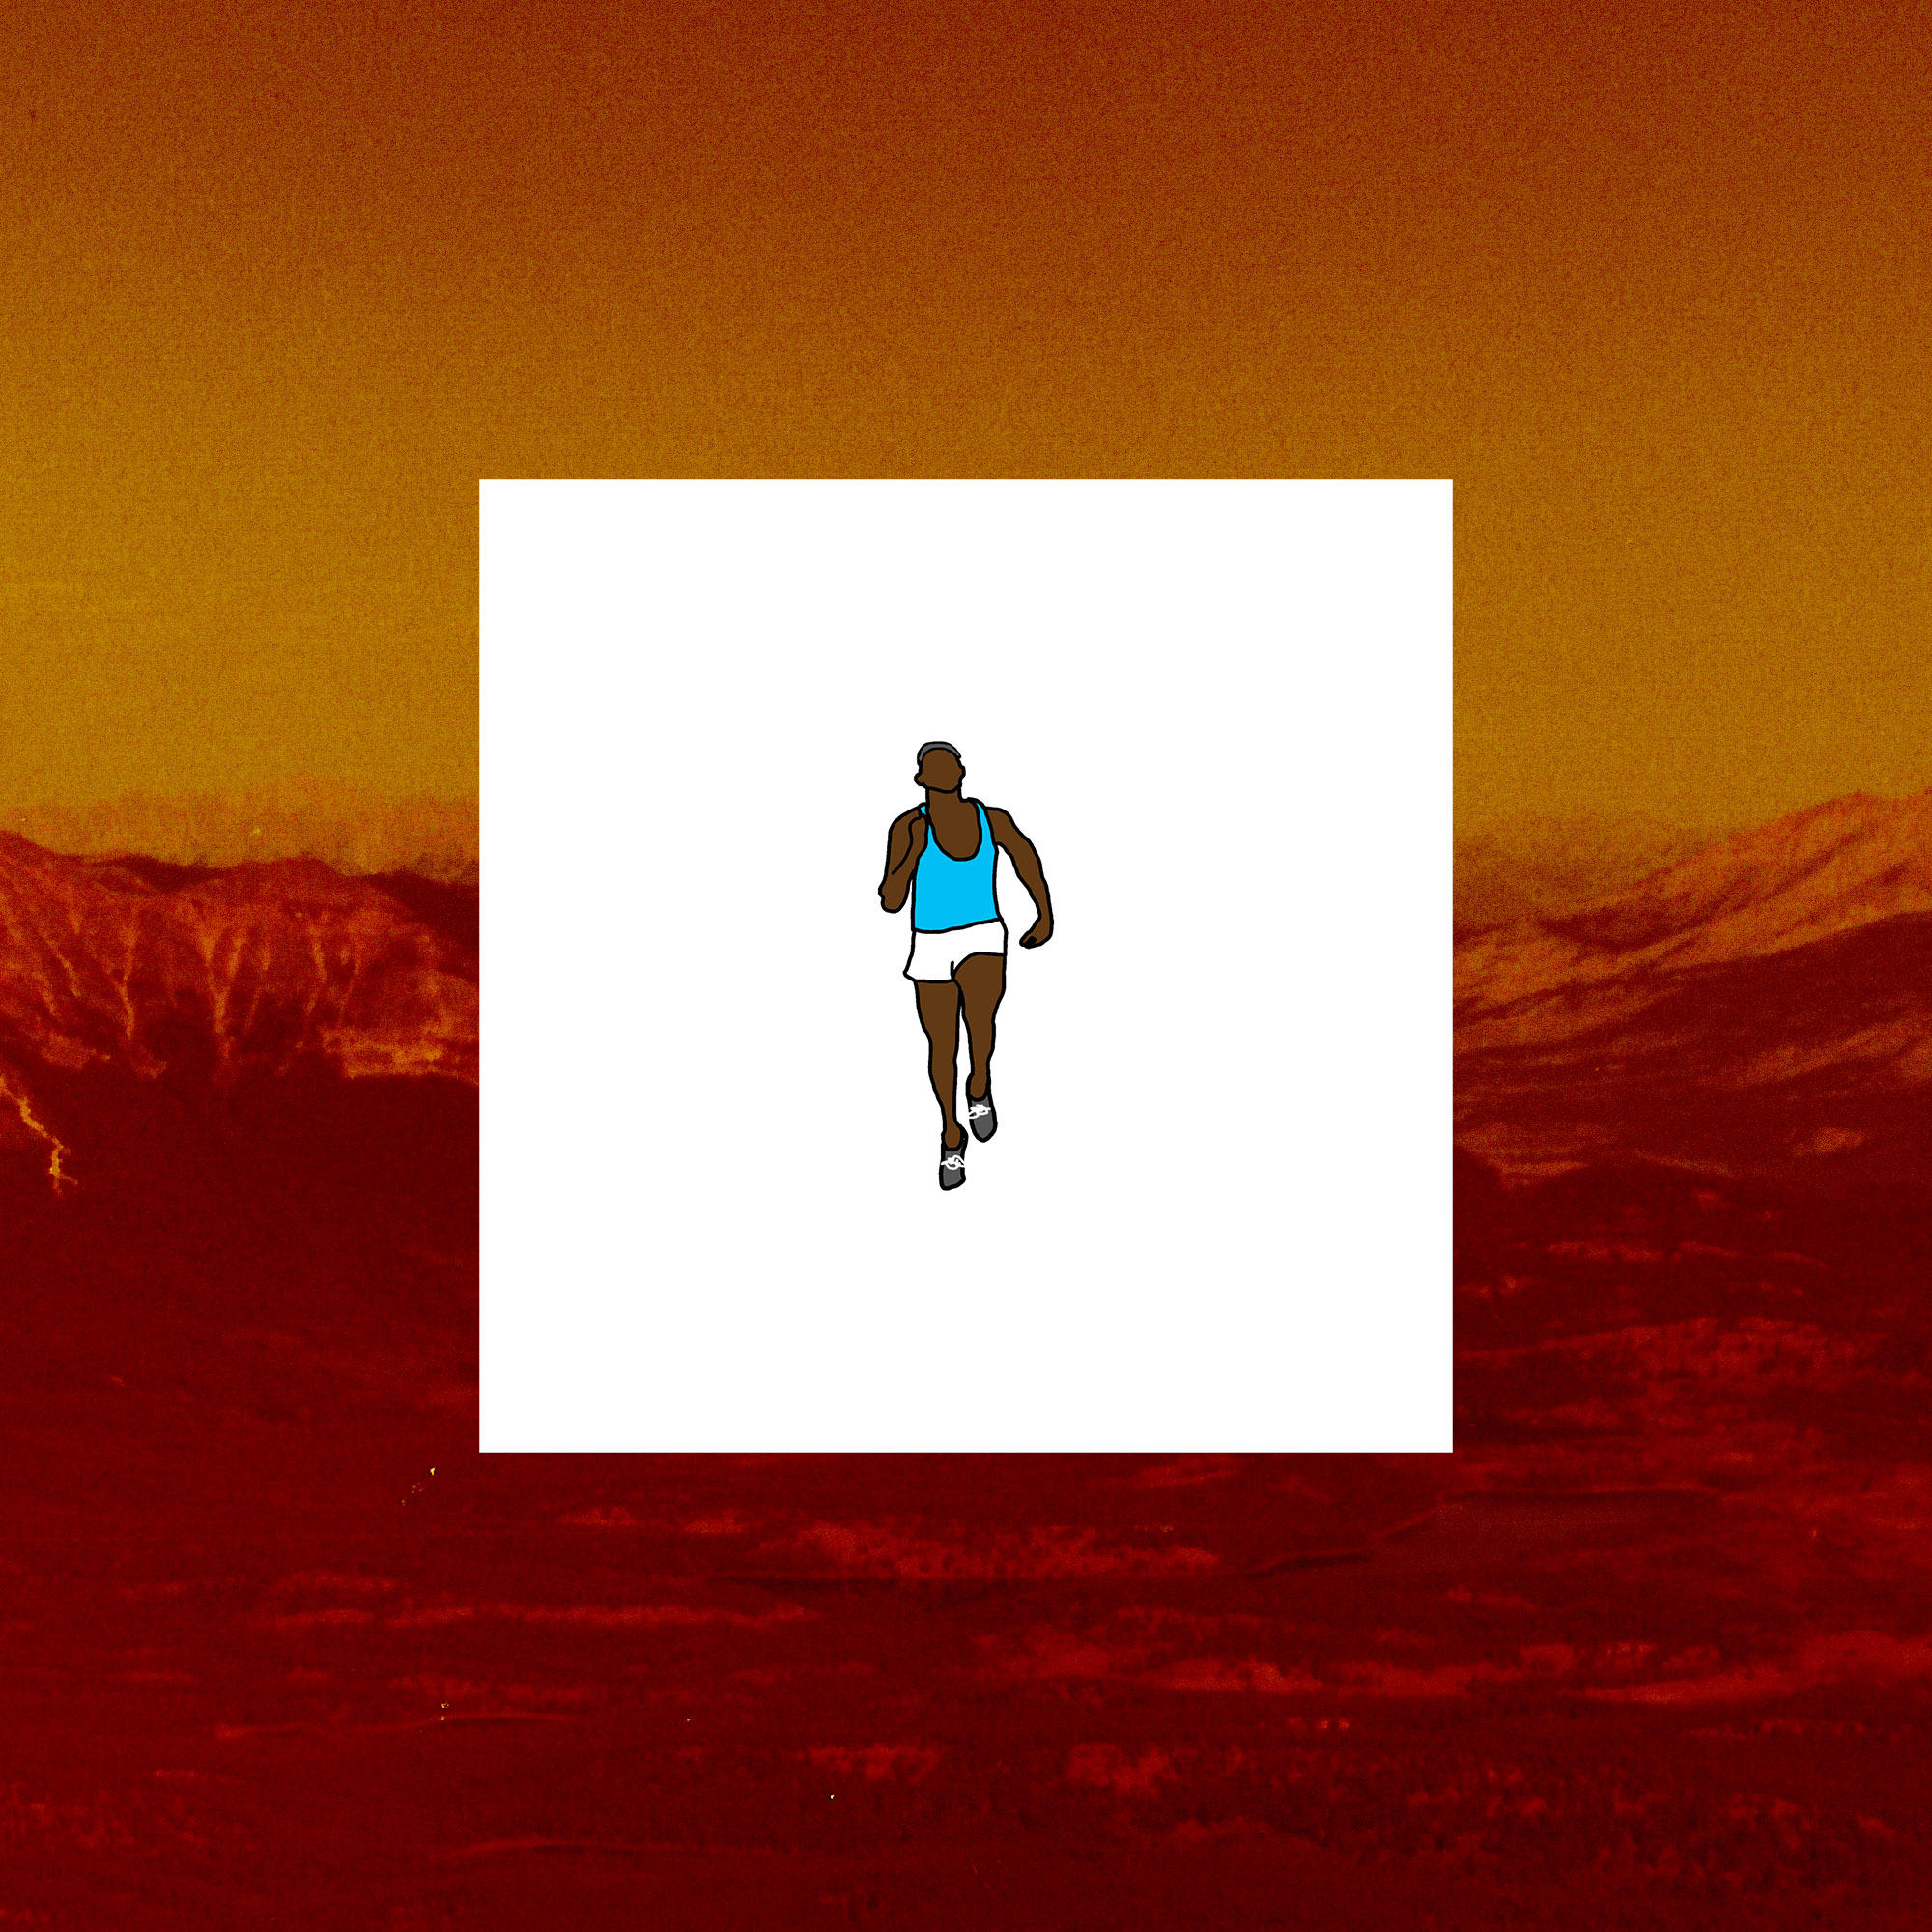 the runner with background.jpg